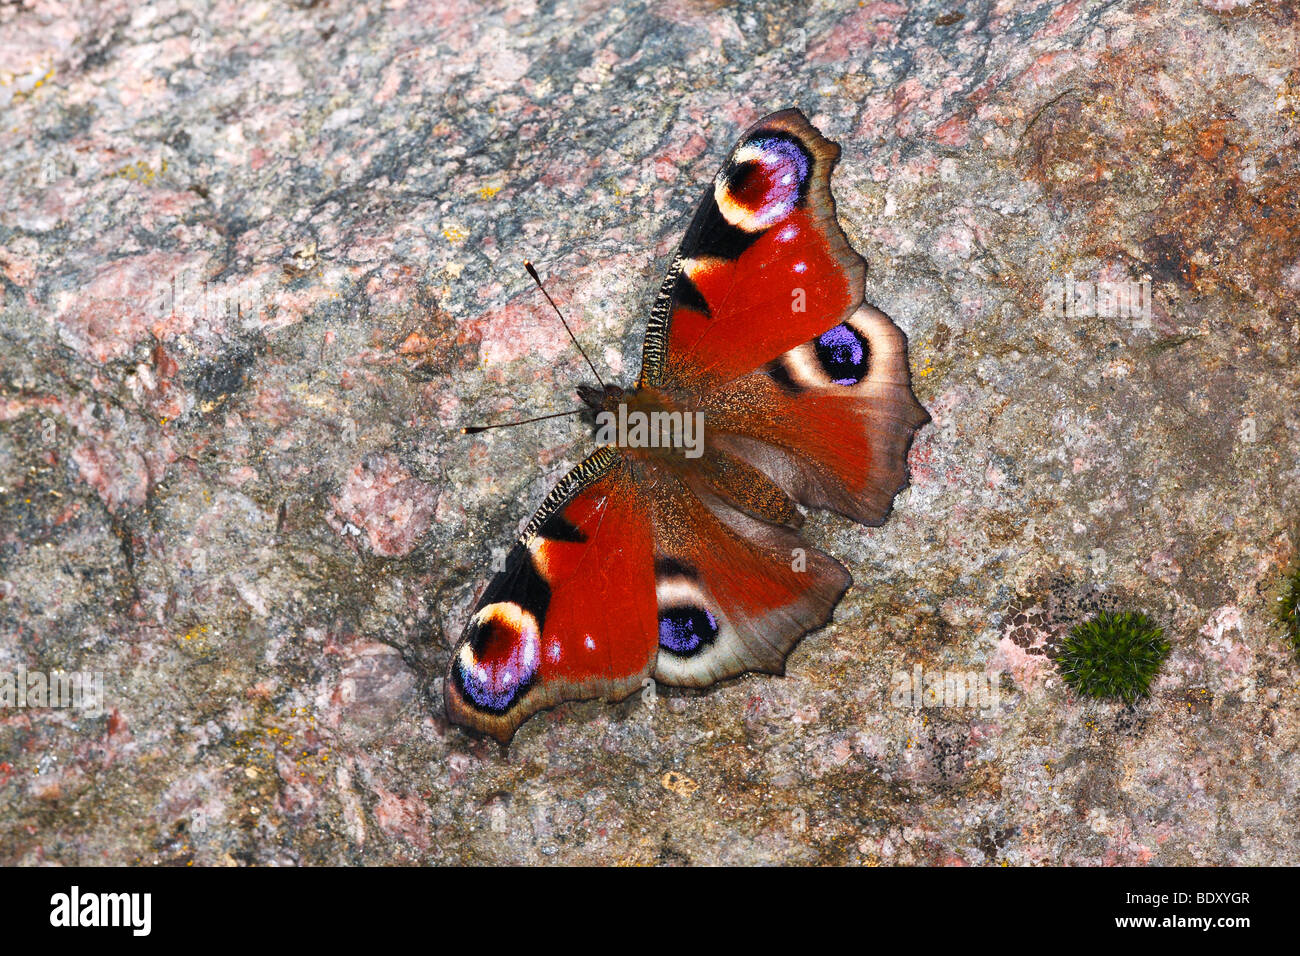 Peacock butterfly (Inachis io) taking a sunbath on a stone - Stock Image